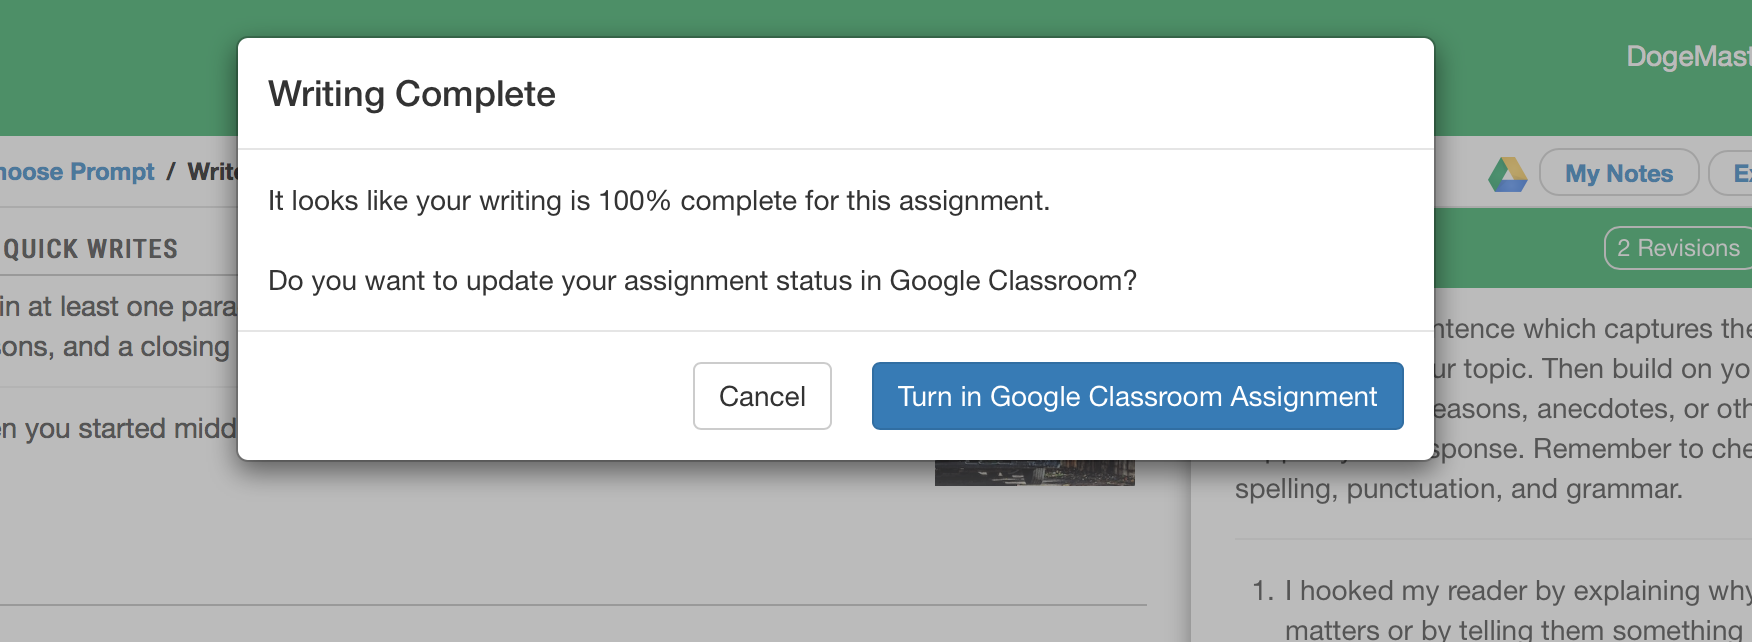 classroom_writing_complete.png